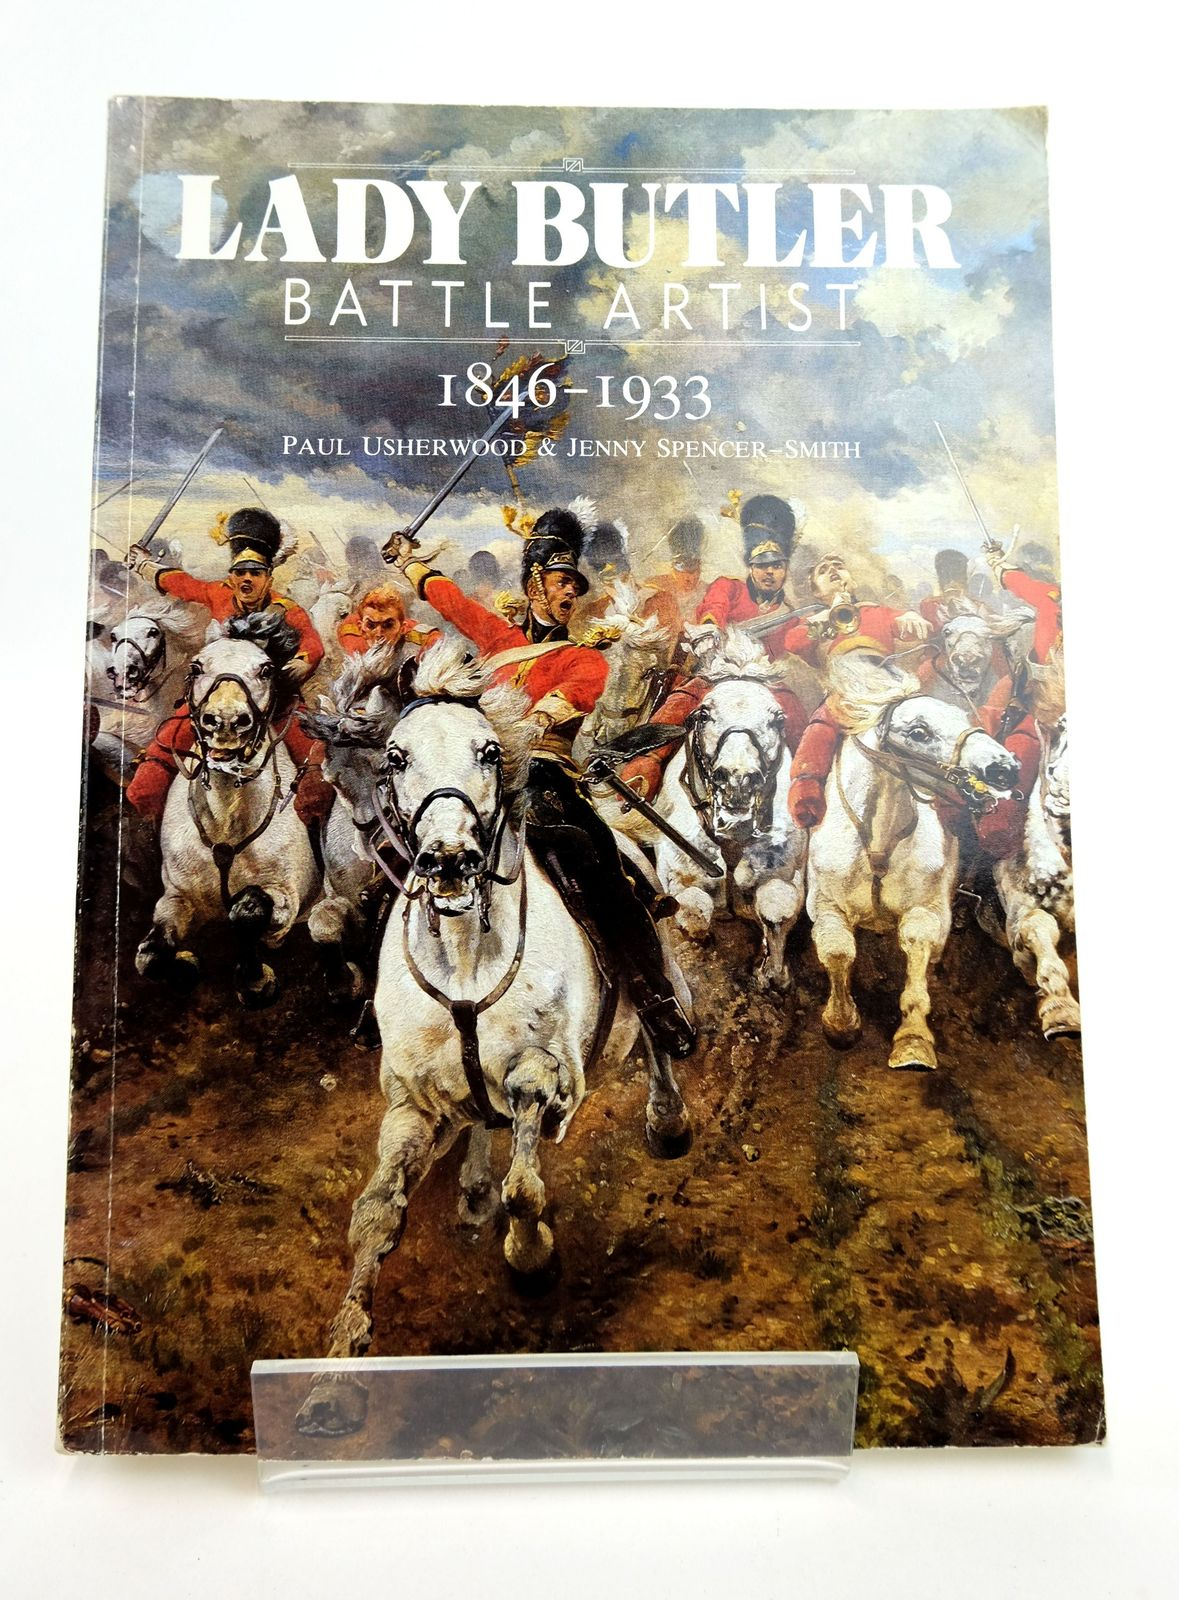 Photo of LADY BUTLER BATTLE ARTIST 1846-1933 written by Usherwood, Paul Spencer-Smith, Jenny illustrated by Butler, Elizabeth published by Alan Sutton (STOCK CODE: 1818953)  for sale by Stella & Rose's Books